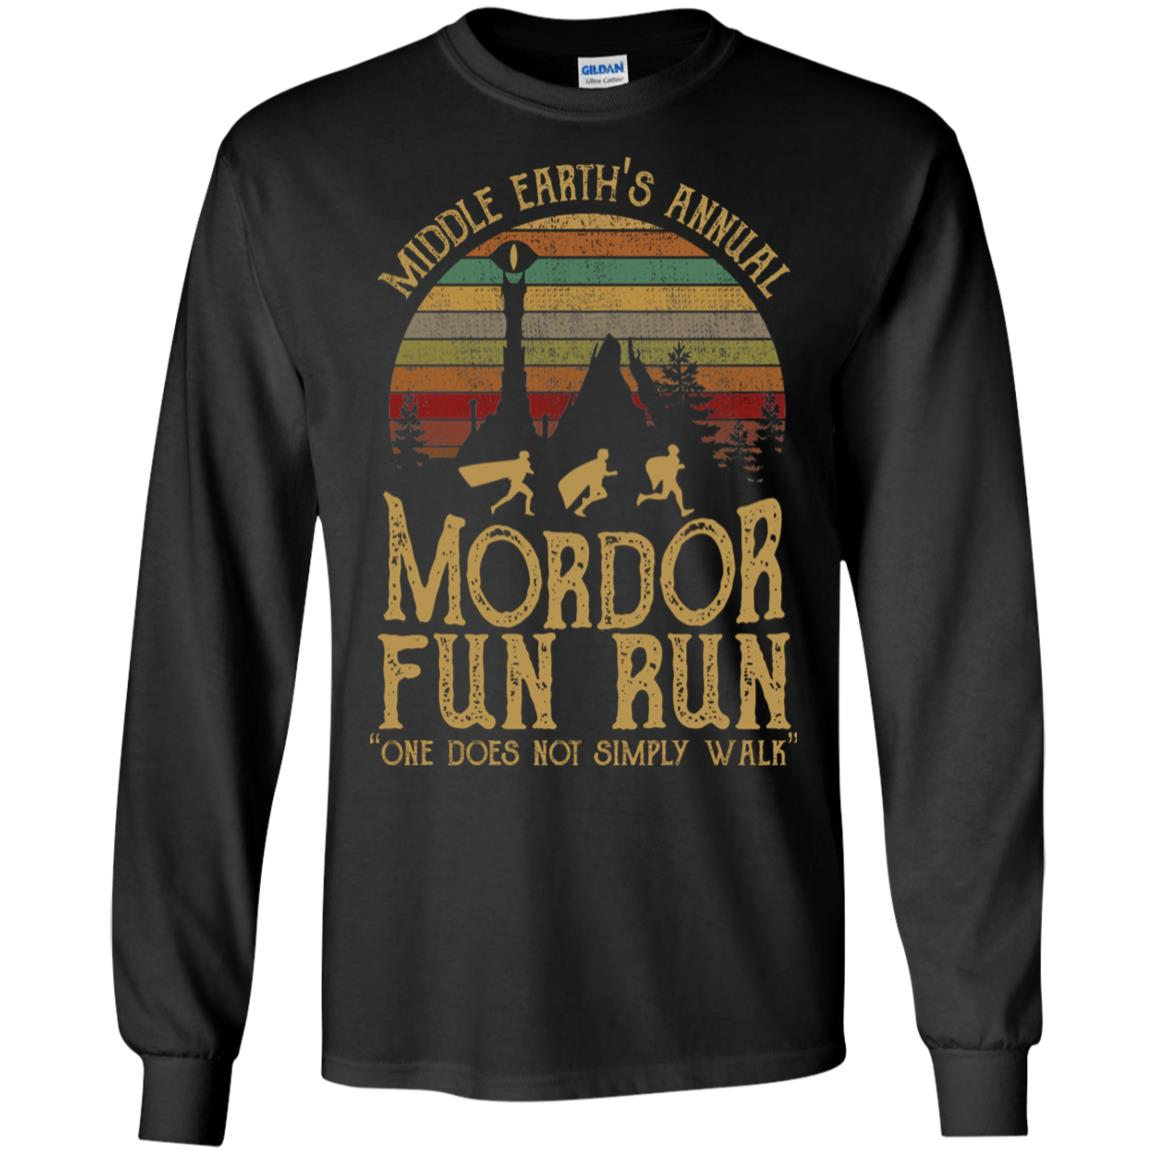 94a68d2b0 Middle earth's annual mordor fun run one does not simply walk T shirt, Ls,